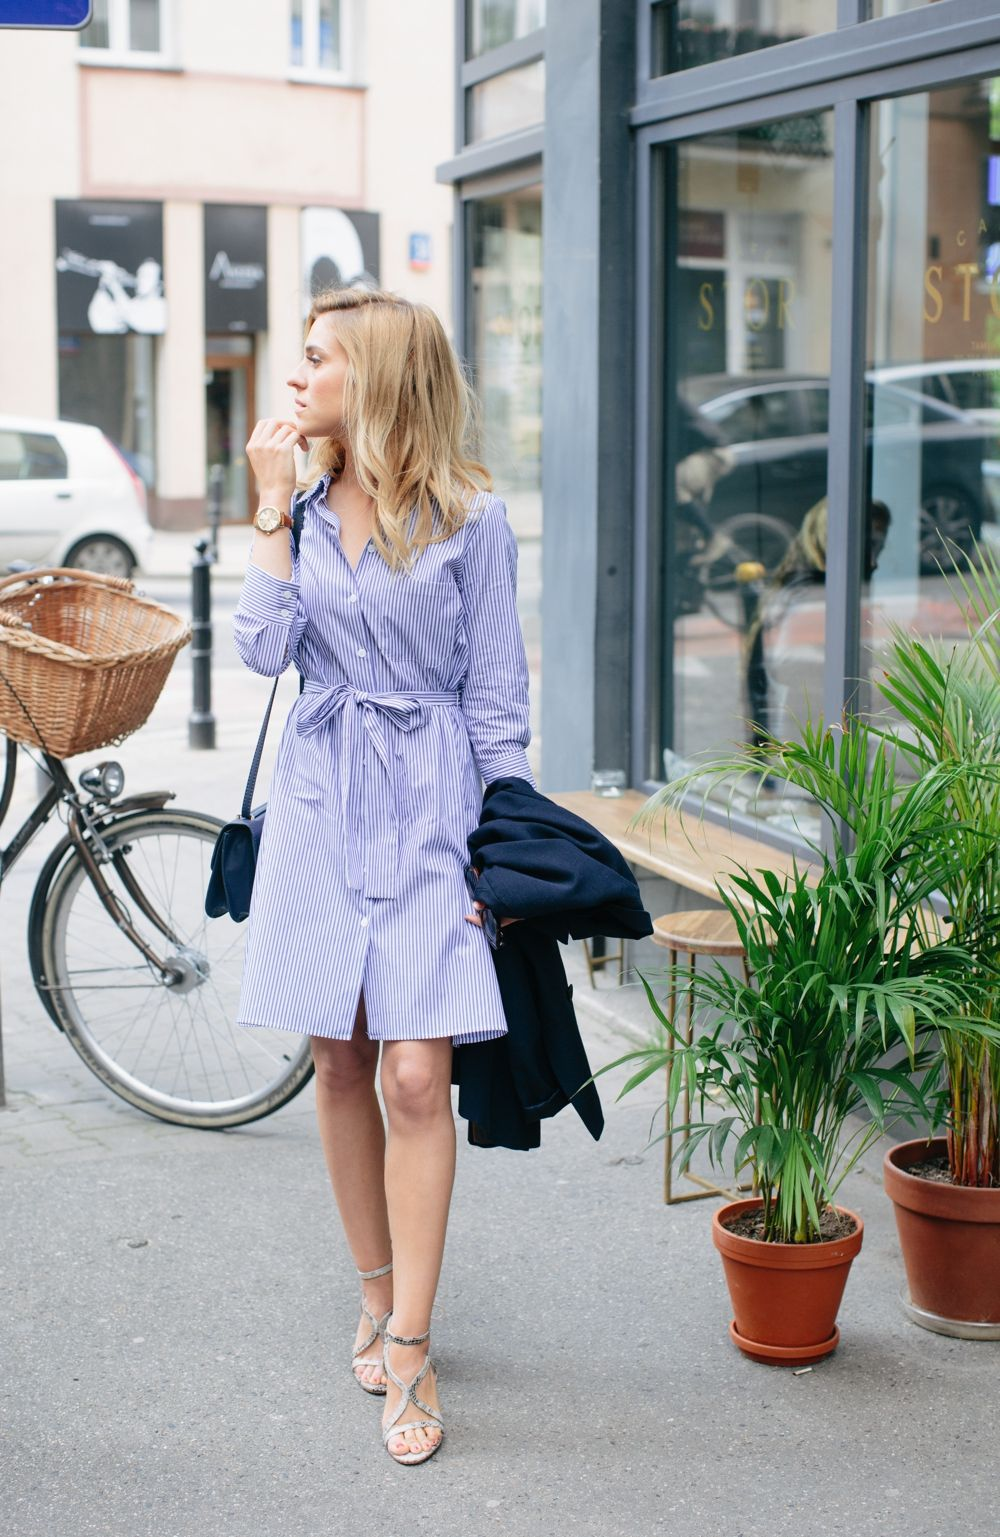 b5305b29 Katarzyna Tusk is looking super relaxed in this cute striped shirt dress  from Zara. A shirt dress with a belt is perfect because not only does it  provide a ...